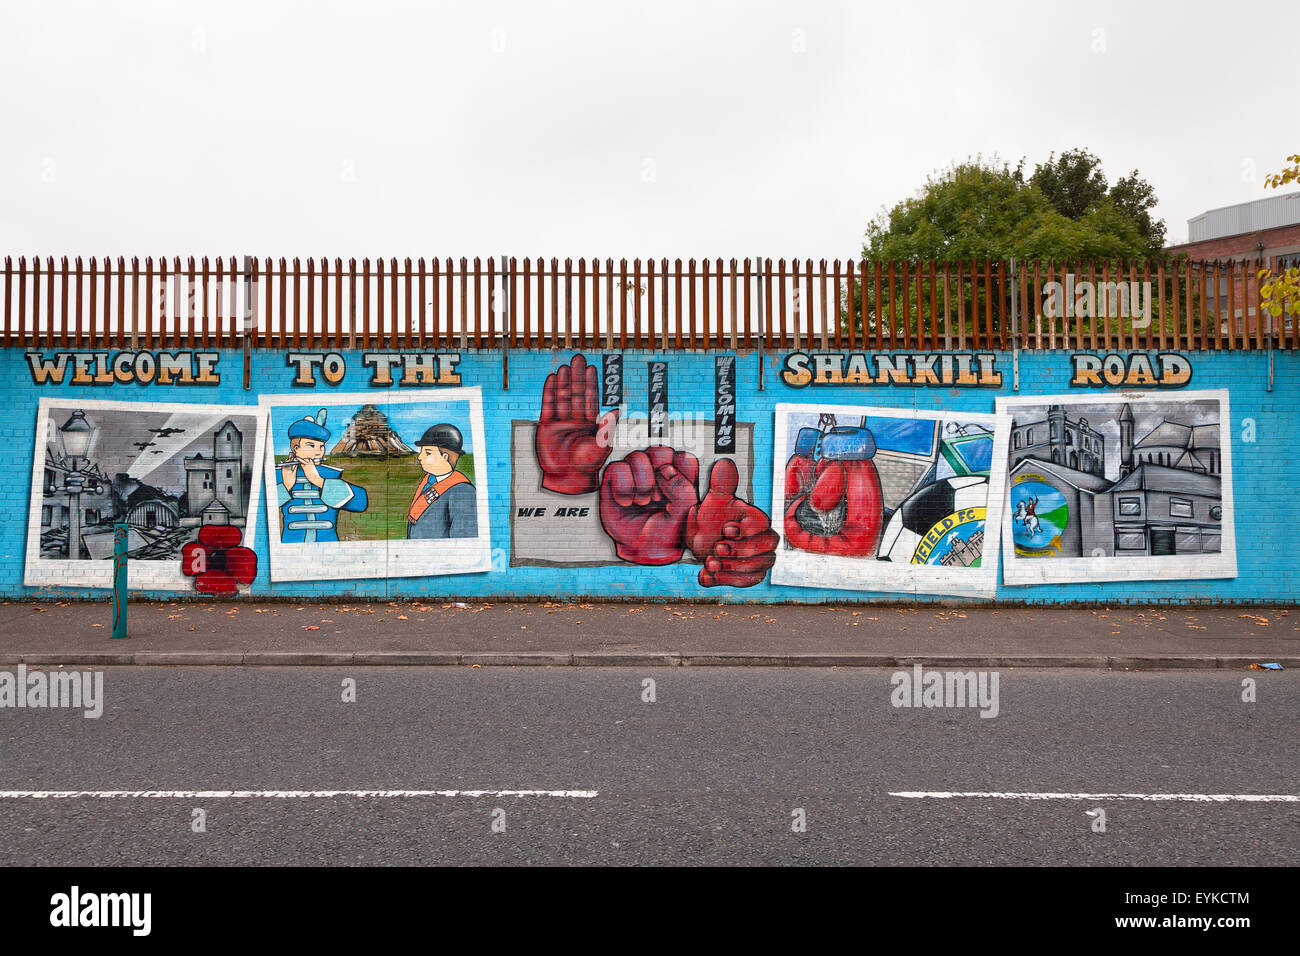 Welcome to Shankill Road mural, Belfast - Stock Image